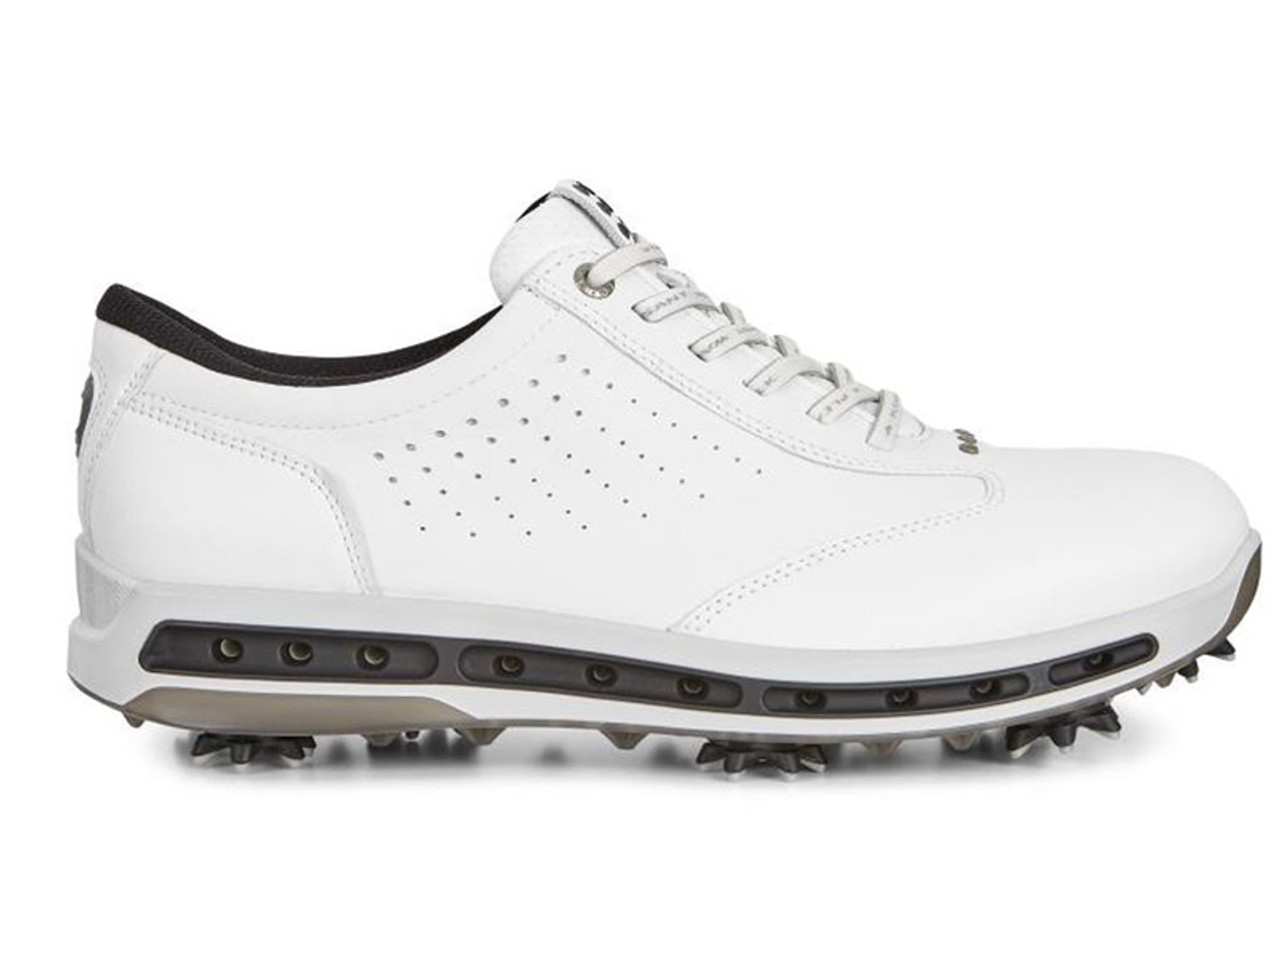 244d054f Ecco Cool Golf Shoes - White